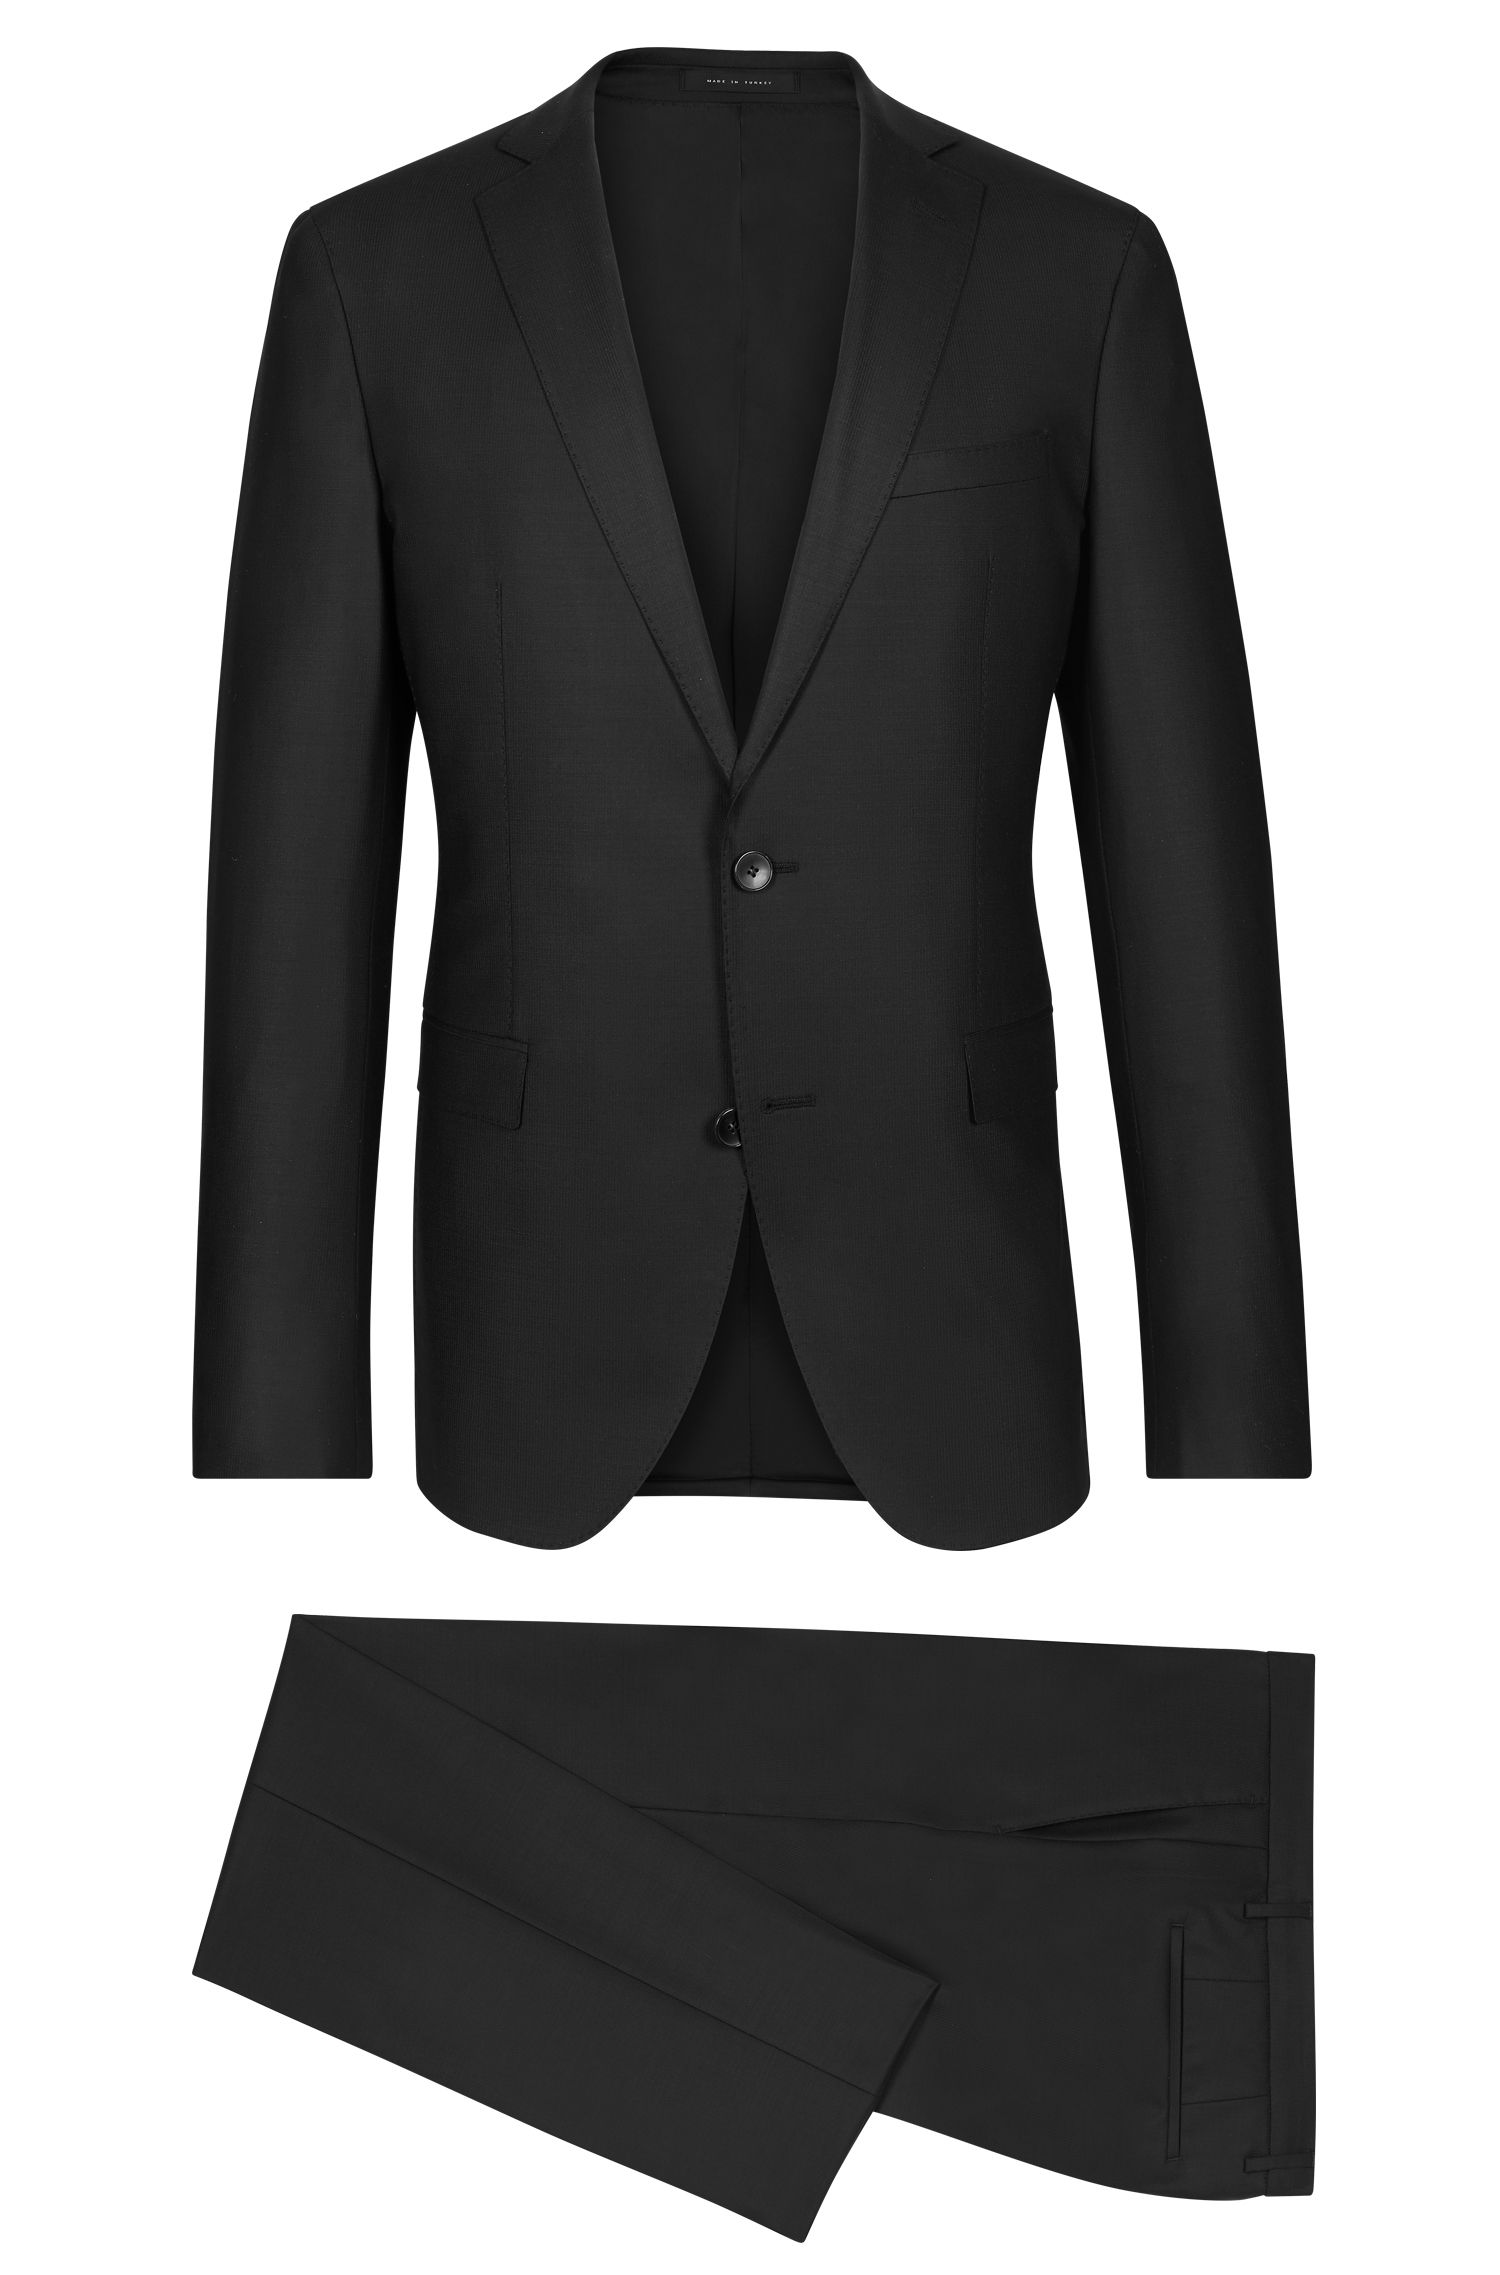 'Reyno/Wave' | Extra Slim Fit, Stretch Virgin Wool Textured Suit